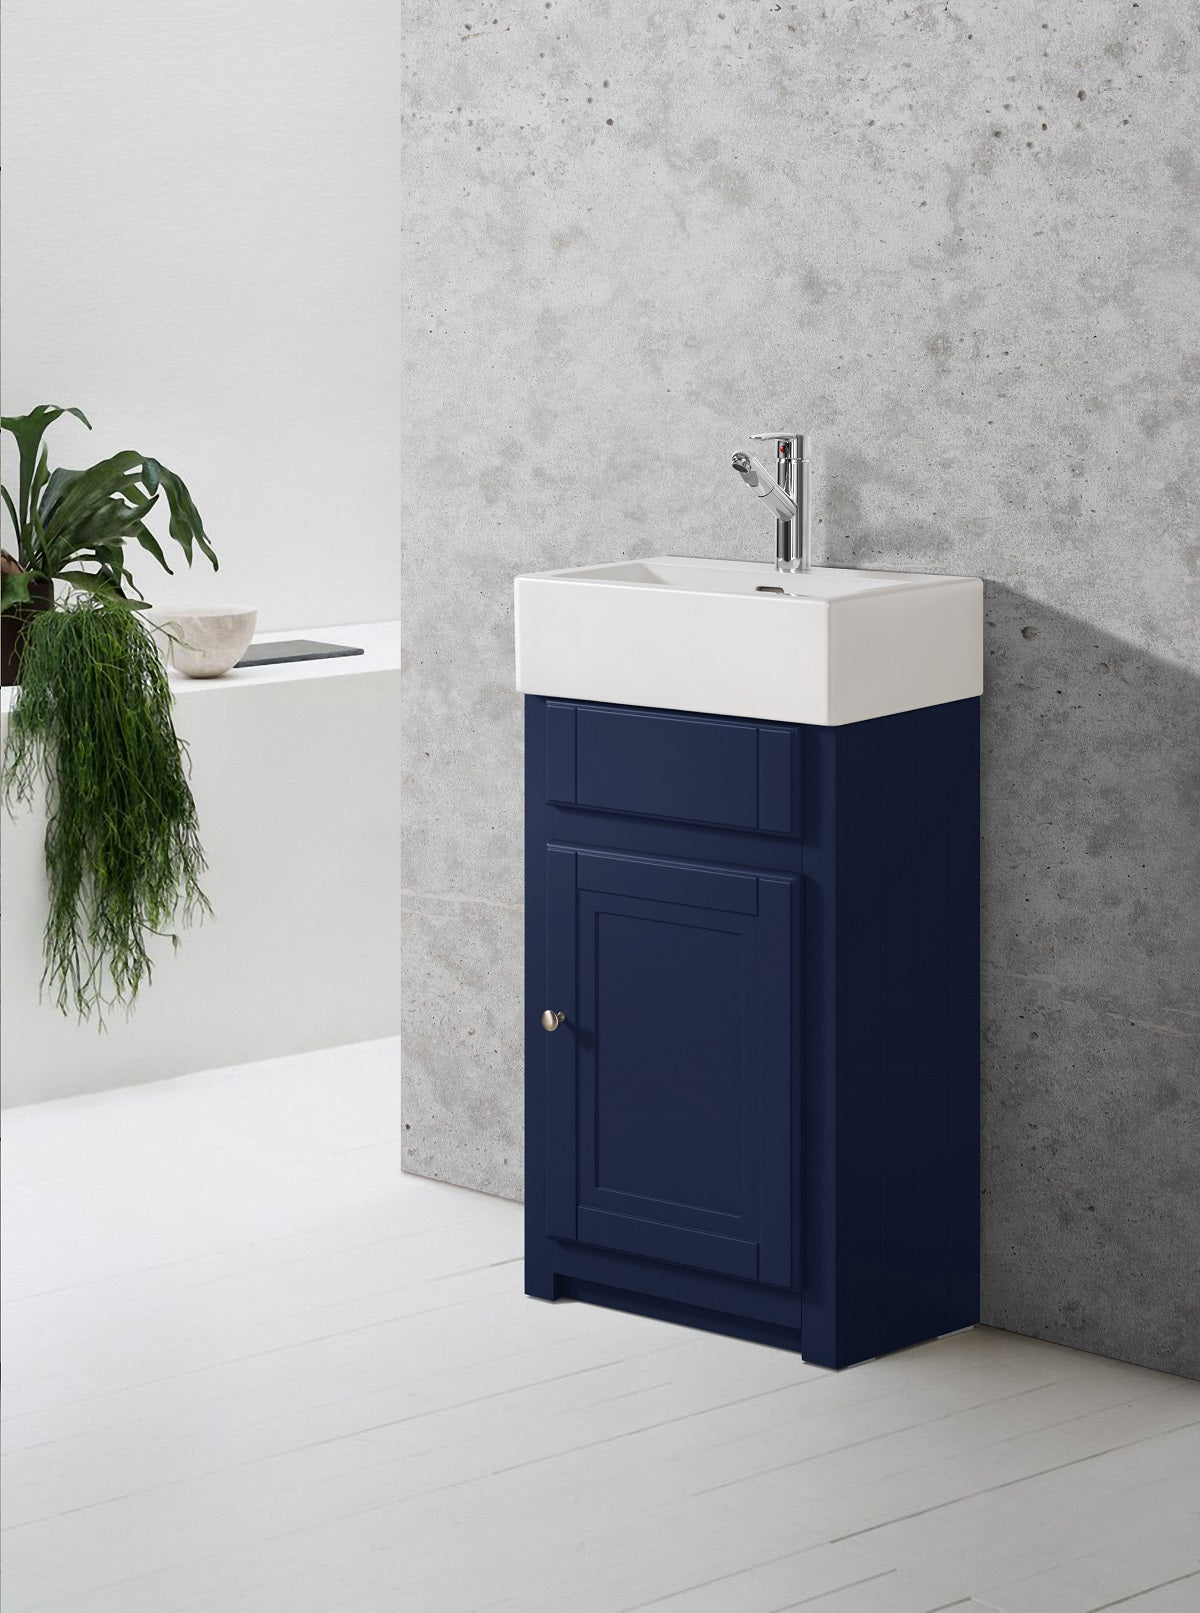 Image of Tenby Sapphire Traditional Belfast Cloakroom Vanity Unit